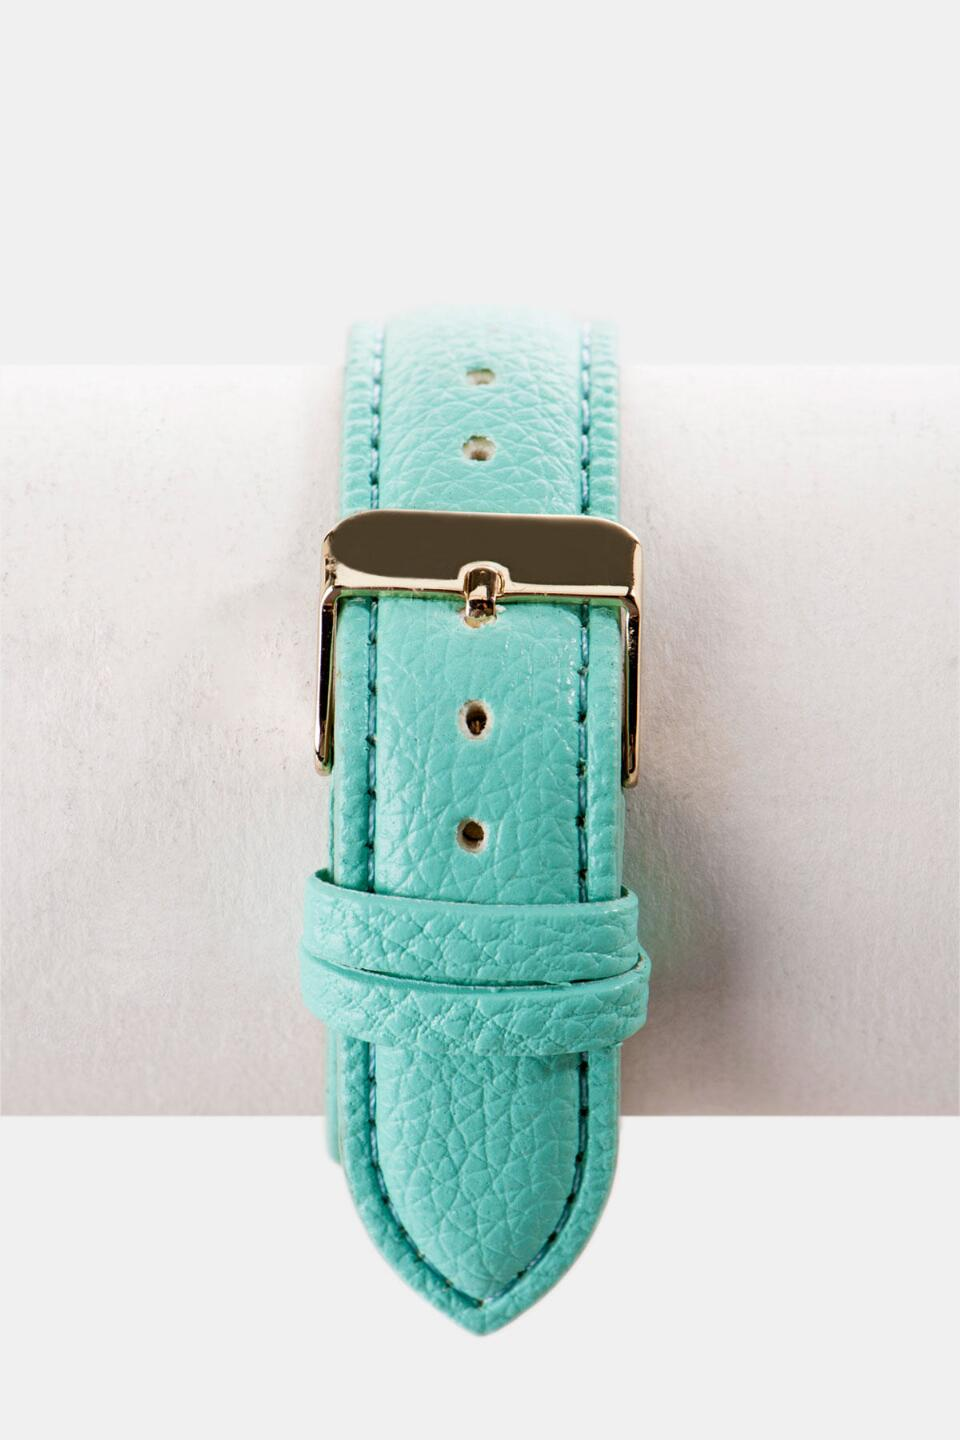 Beverly Hills Striped Watch in Mint-  mint-clback